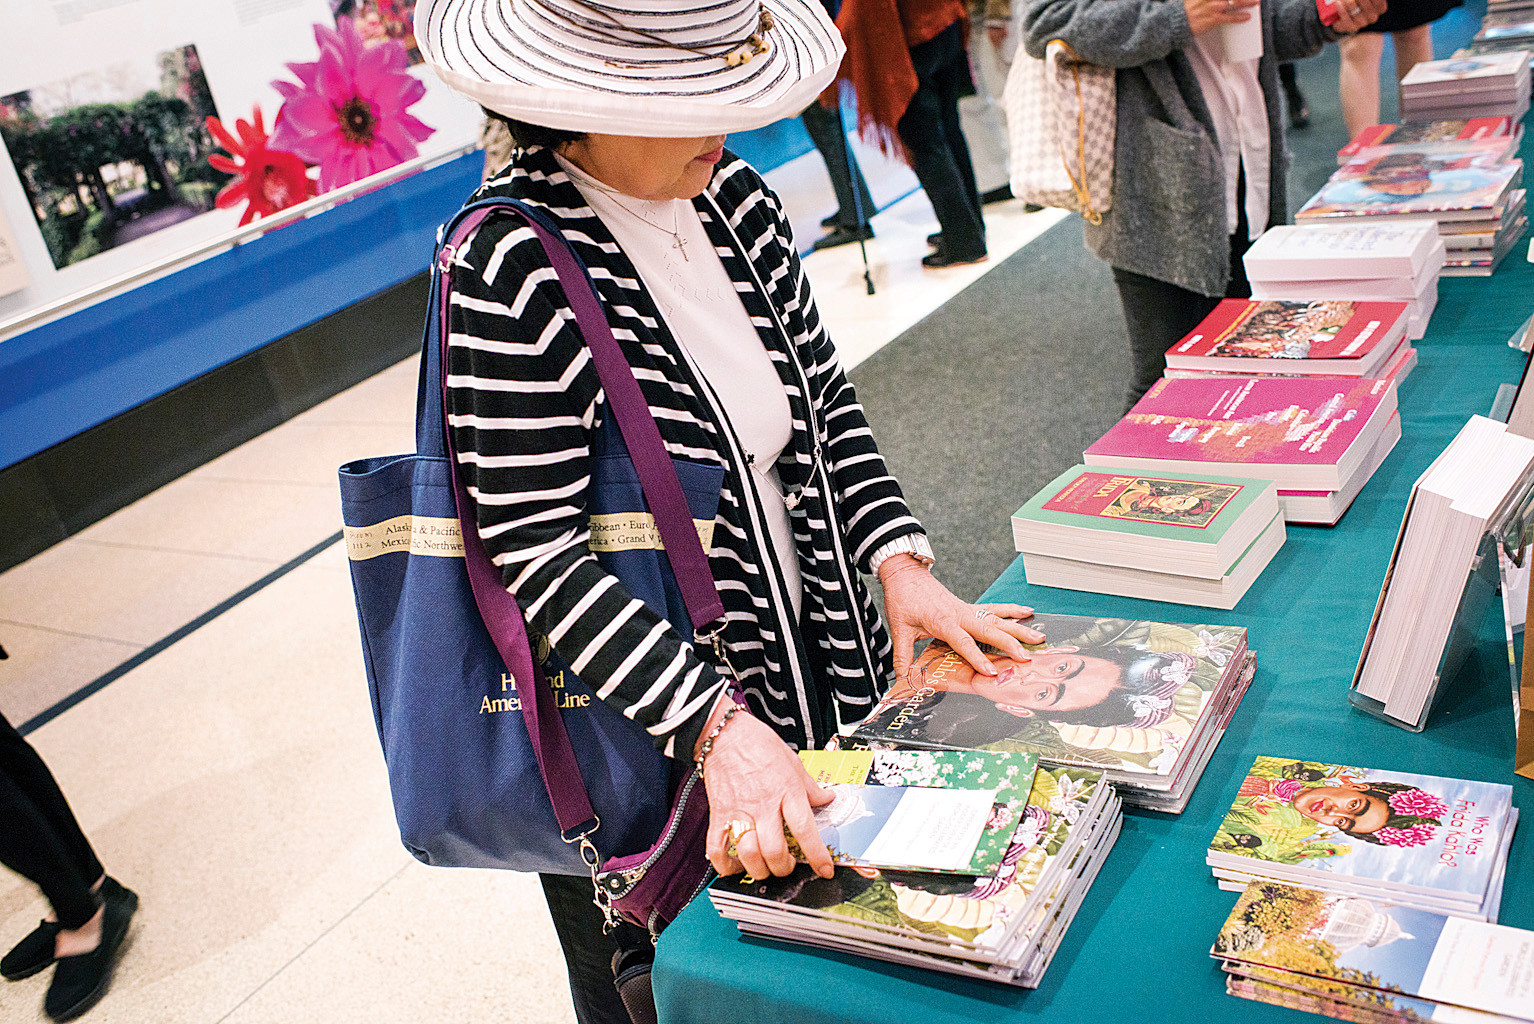 New York Botanical Garden members view the Frida Kahlo books for sale before a panel discussion on Mexican Art in the Ross Auditorium.